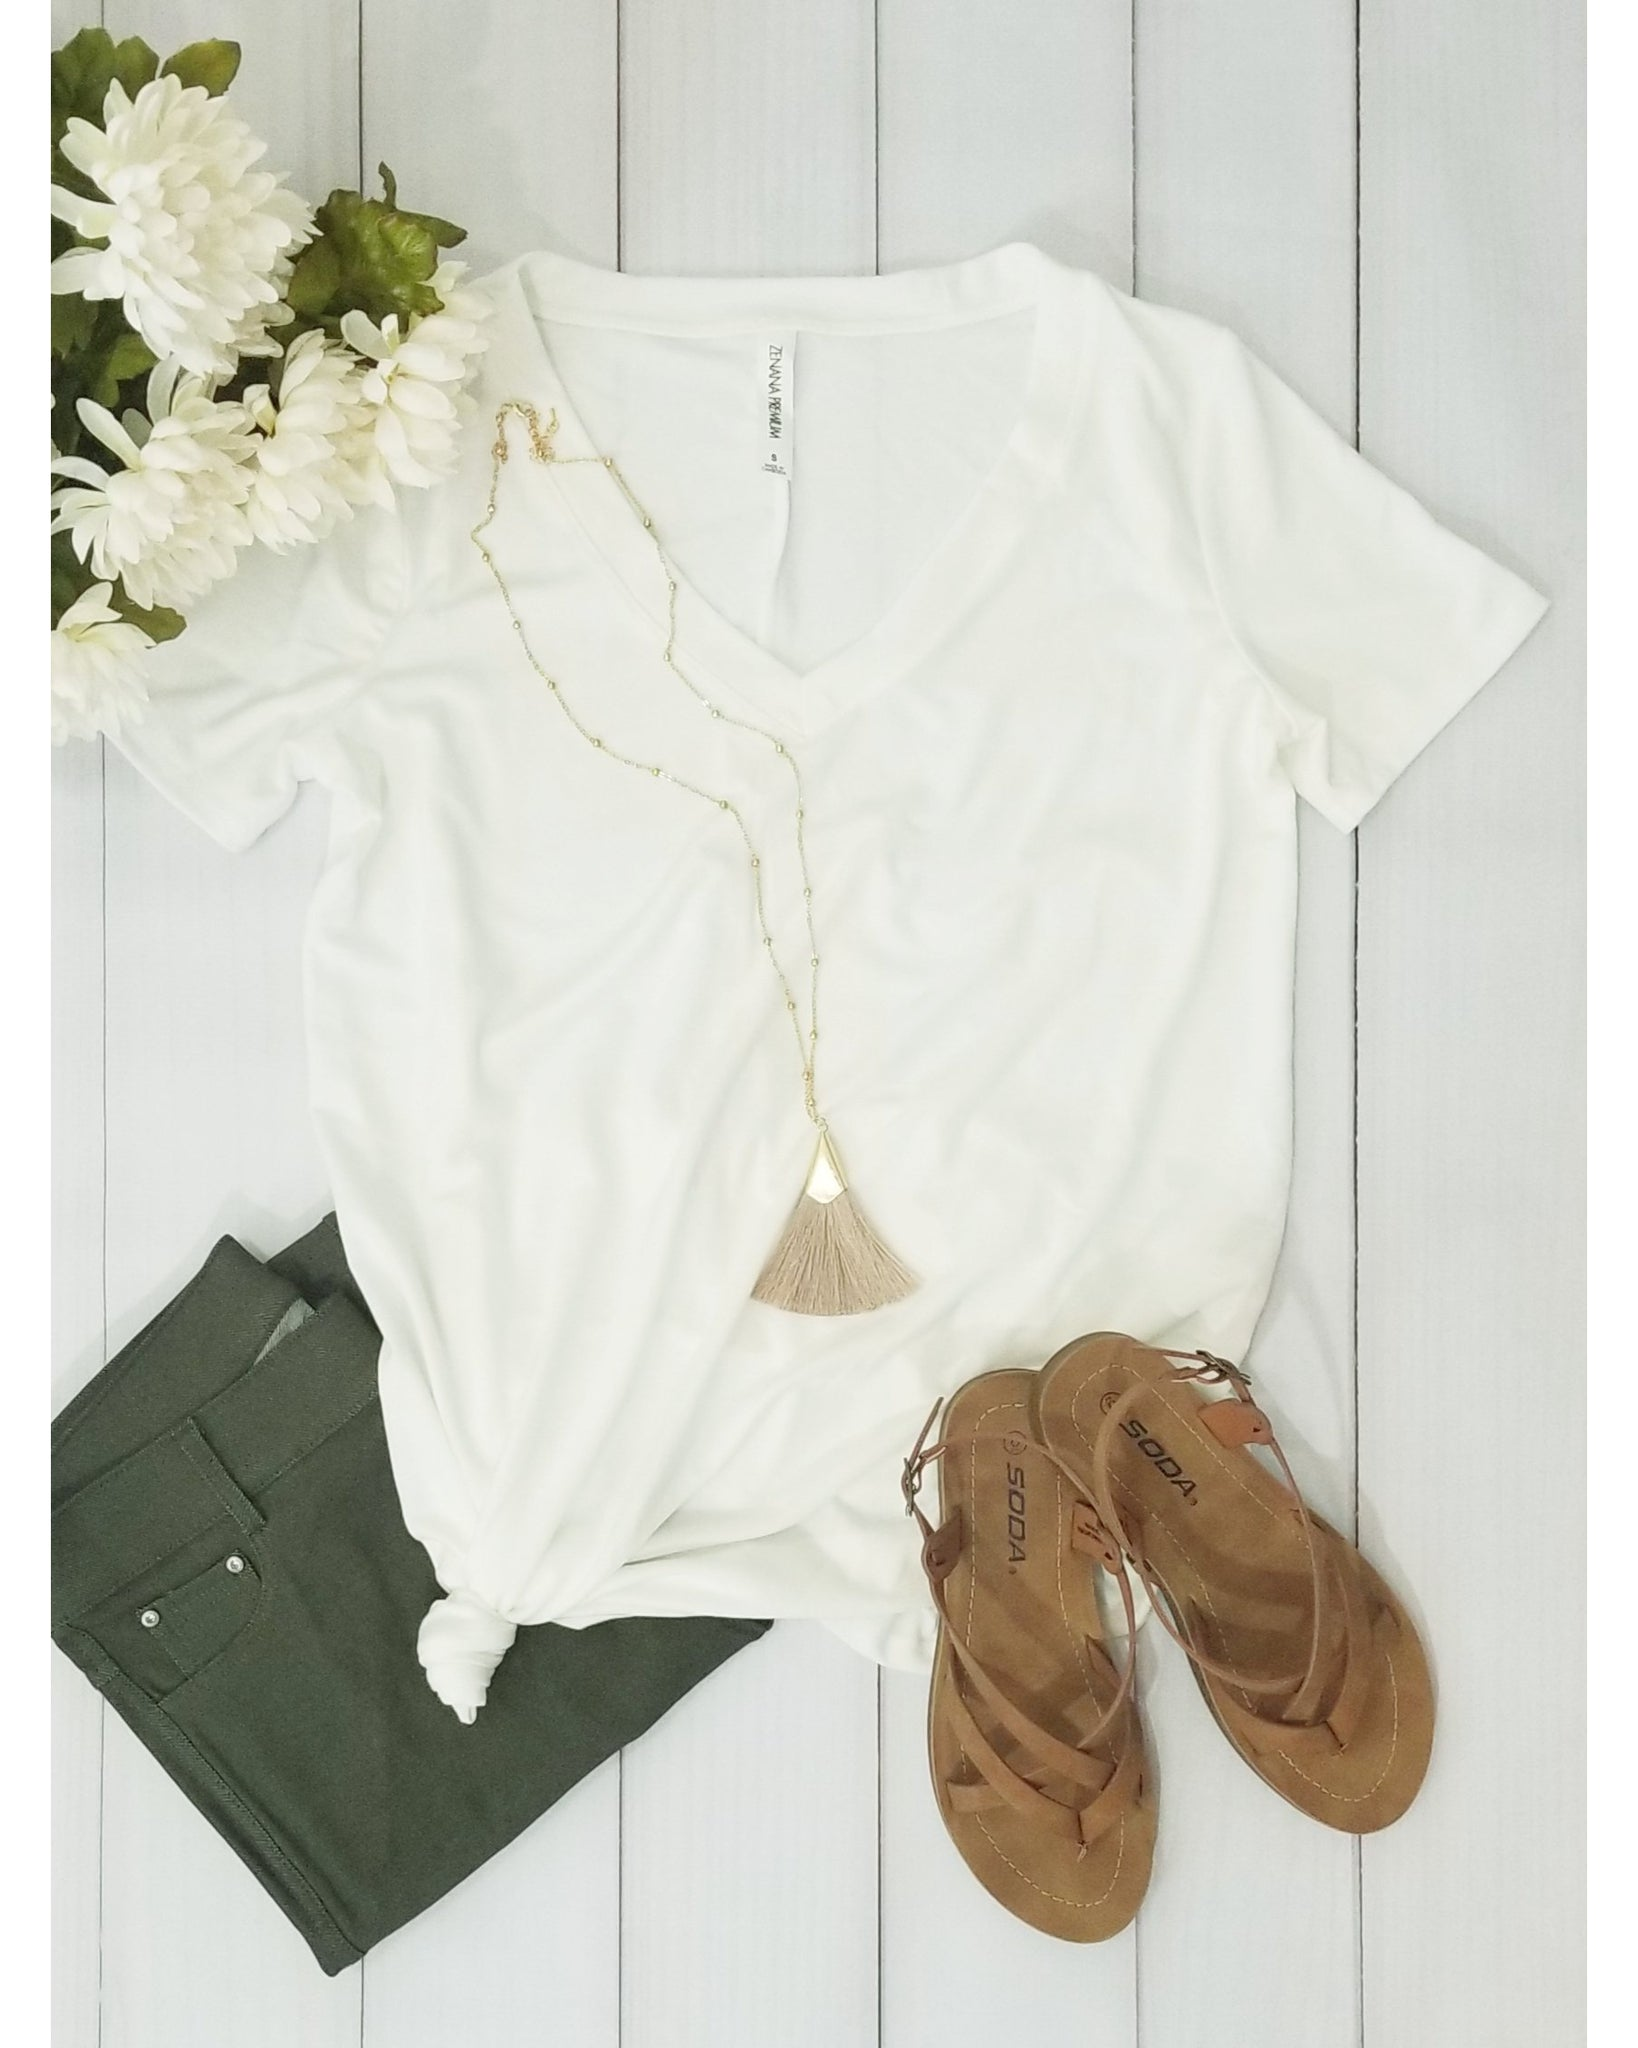 Keeping It Comfortable Short Sleeve V-Neck T-Shirt Top in Ivory - Essentially Elegant